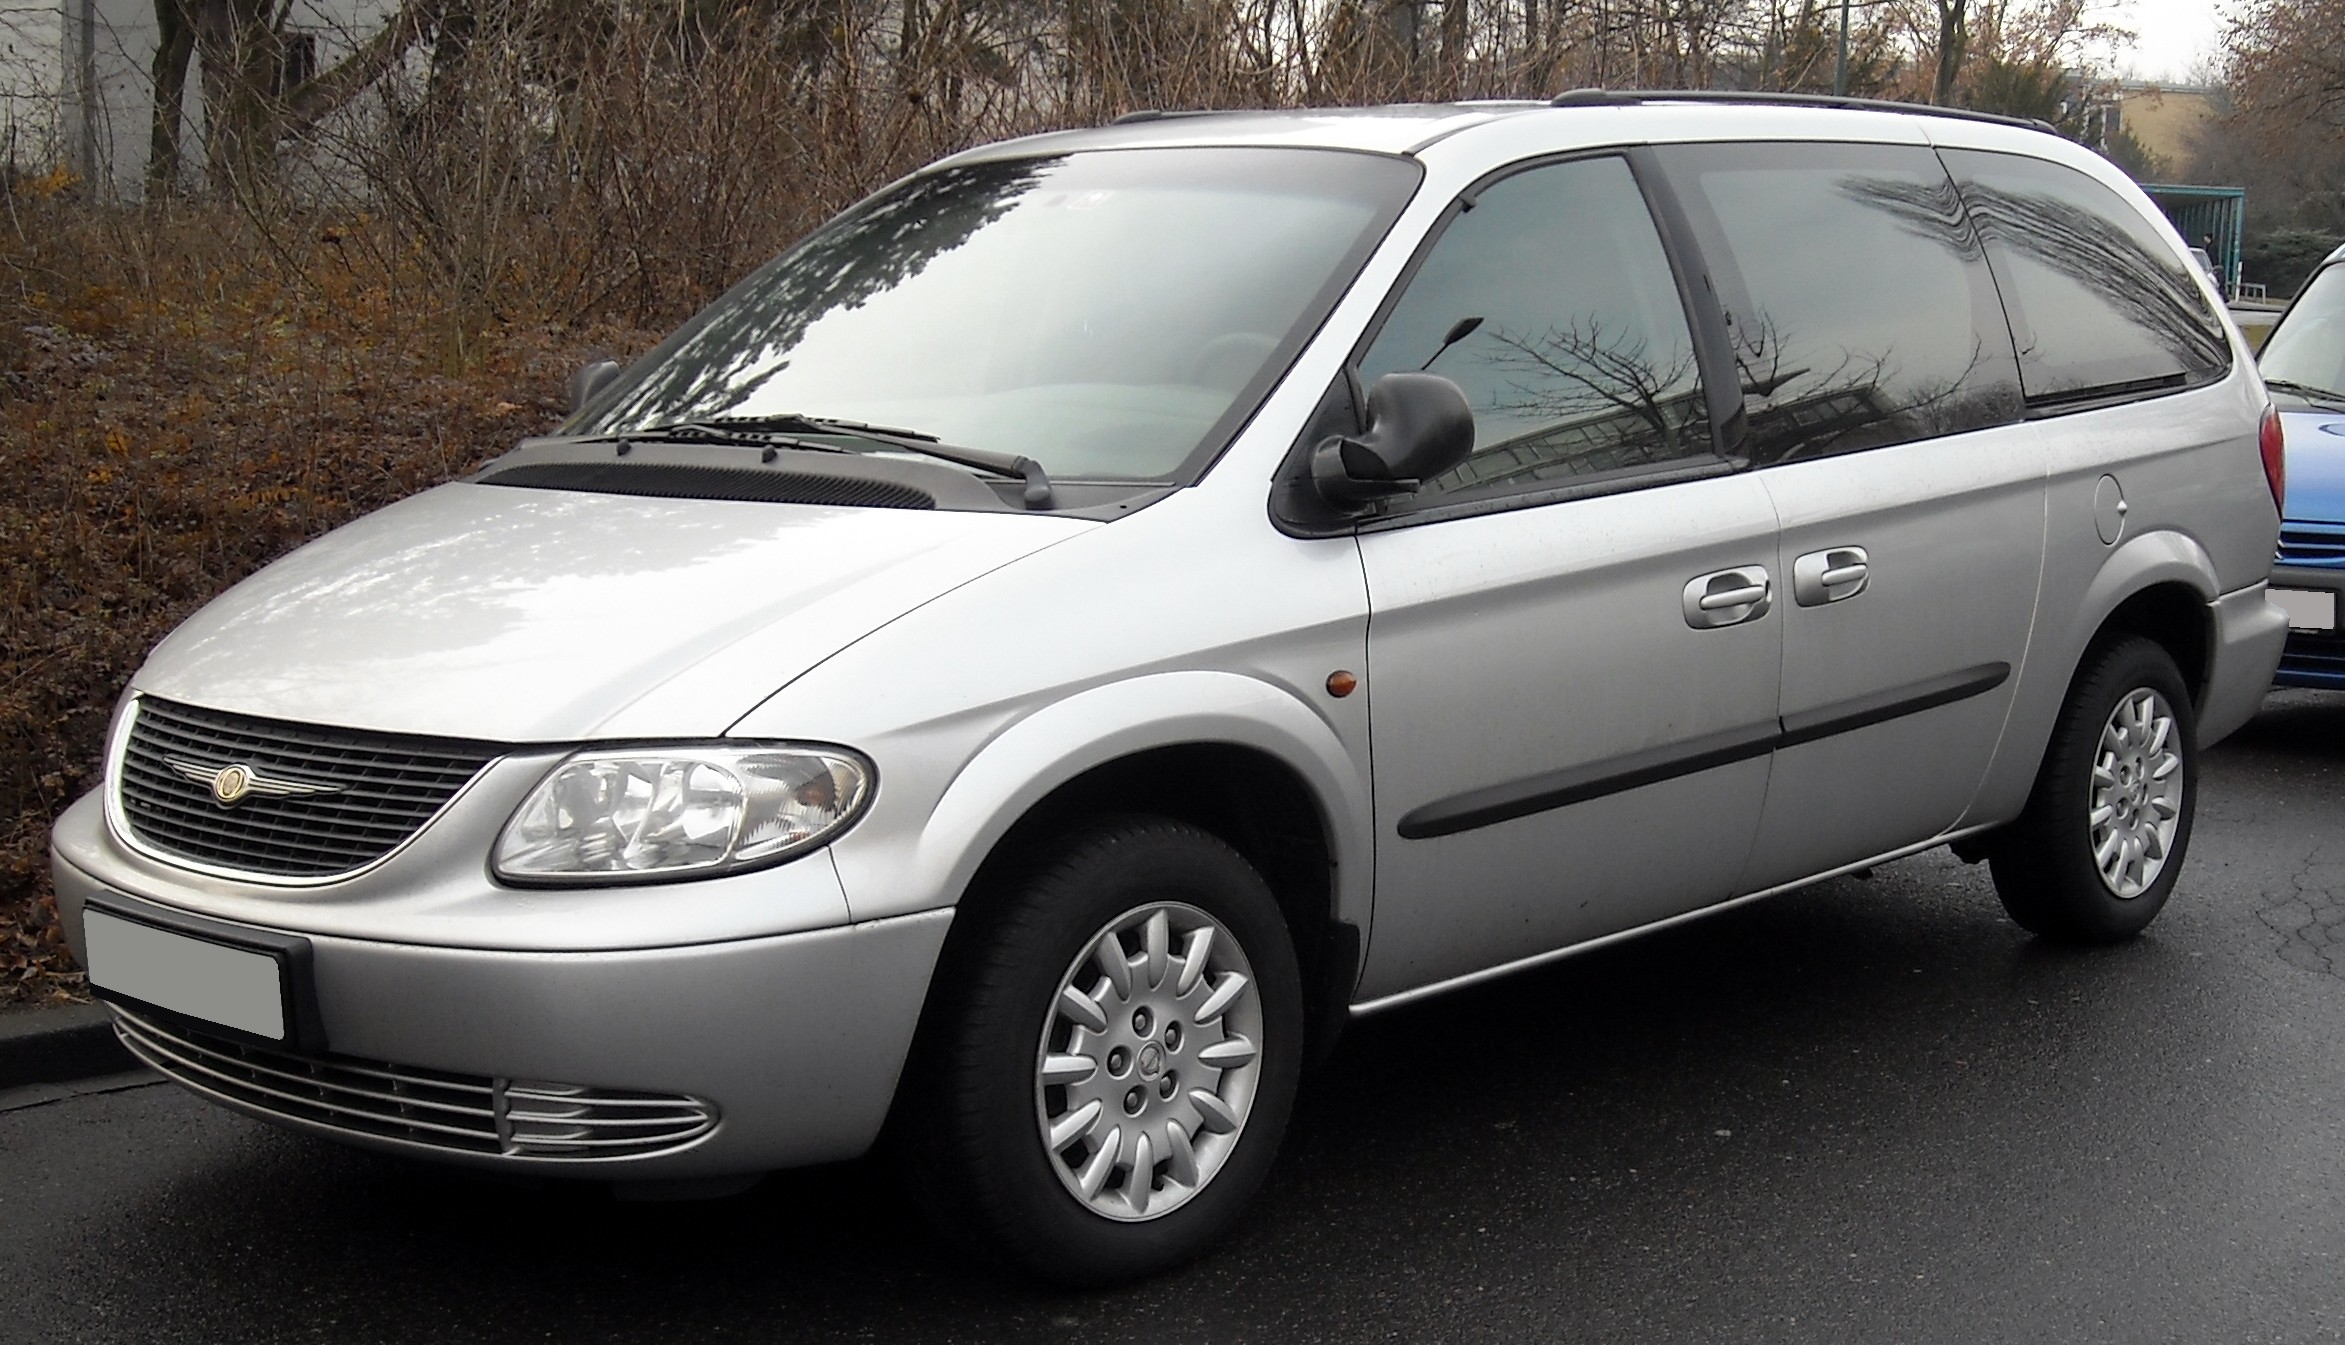 Chrysler Grand Voyager 3.3 2009 photo - 10